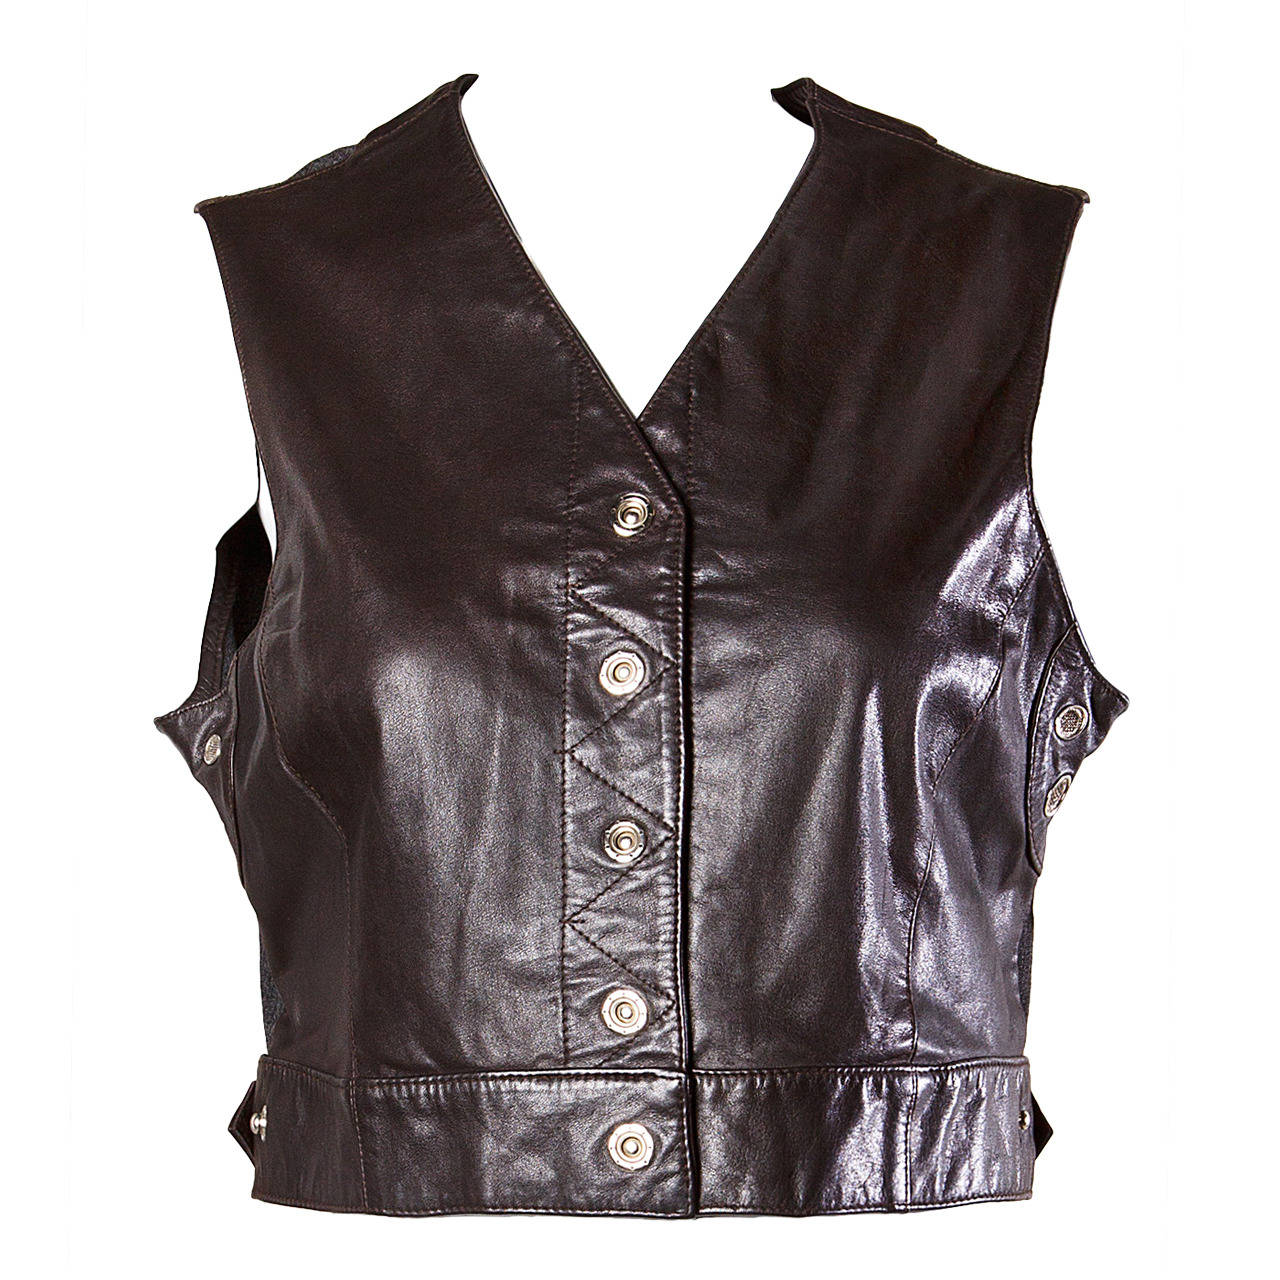 Emanuel Ungaro Vintage 1990s Cropped Leather Vest Top For Sale